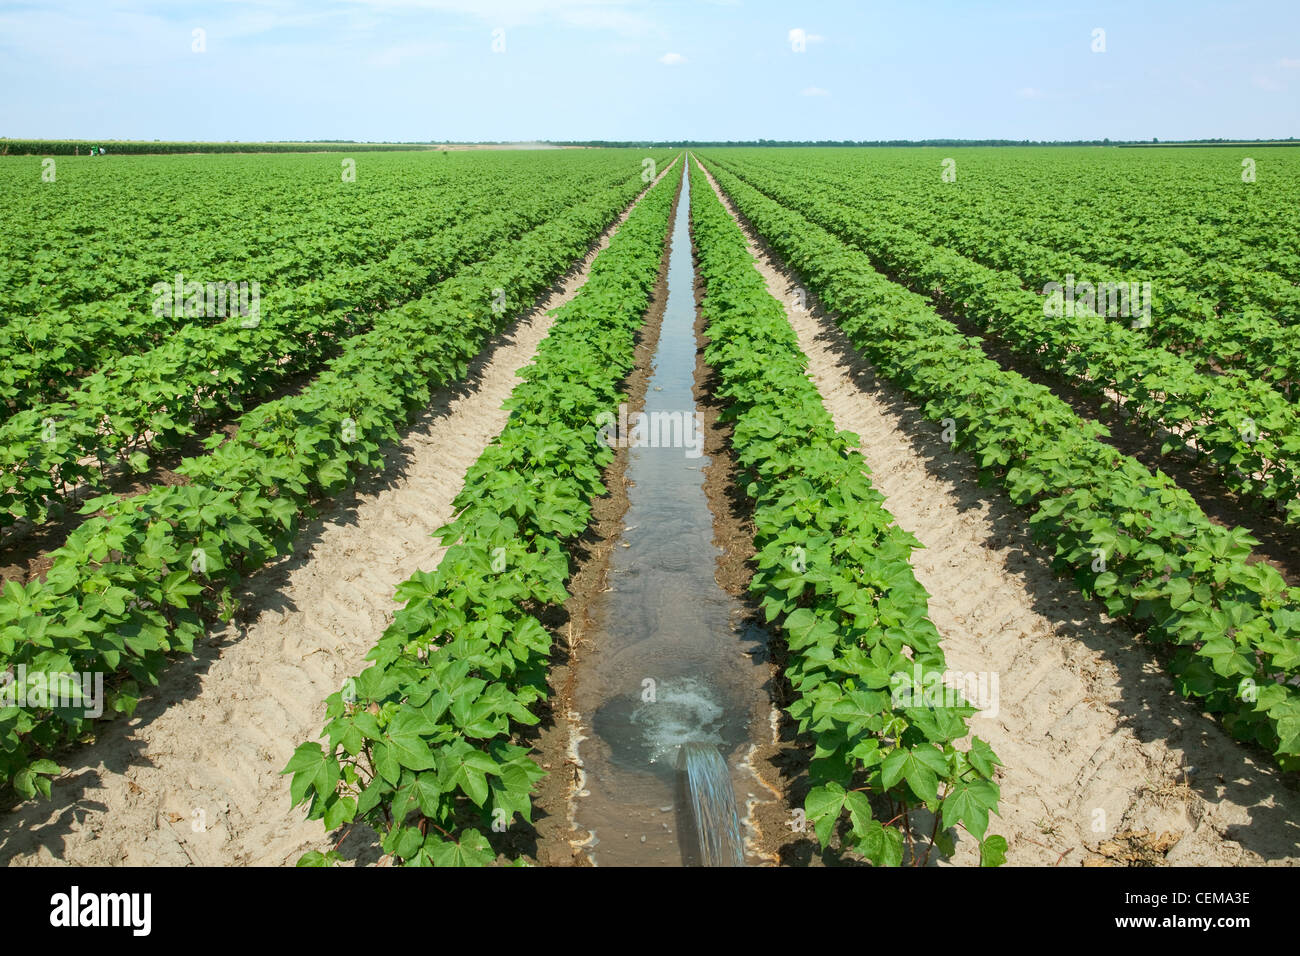 Field of mid growth cotton at fruit set stage, being furrow irrigated. The water is directed down every other row - Stock Image